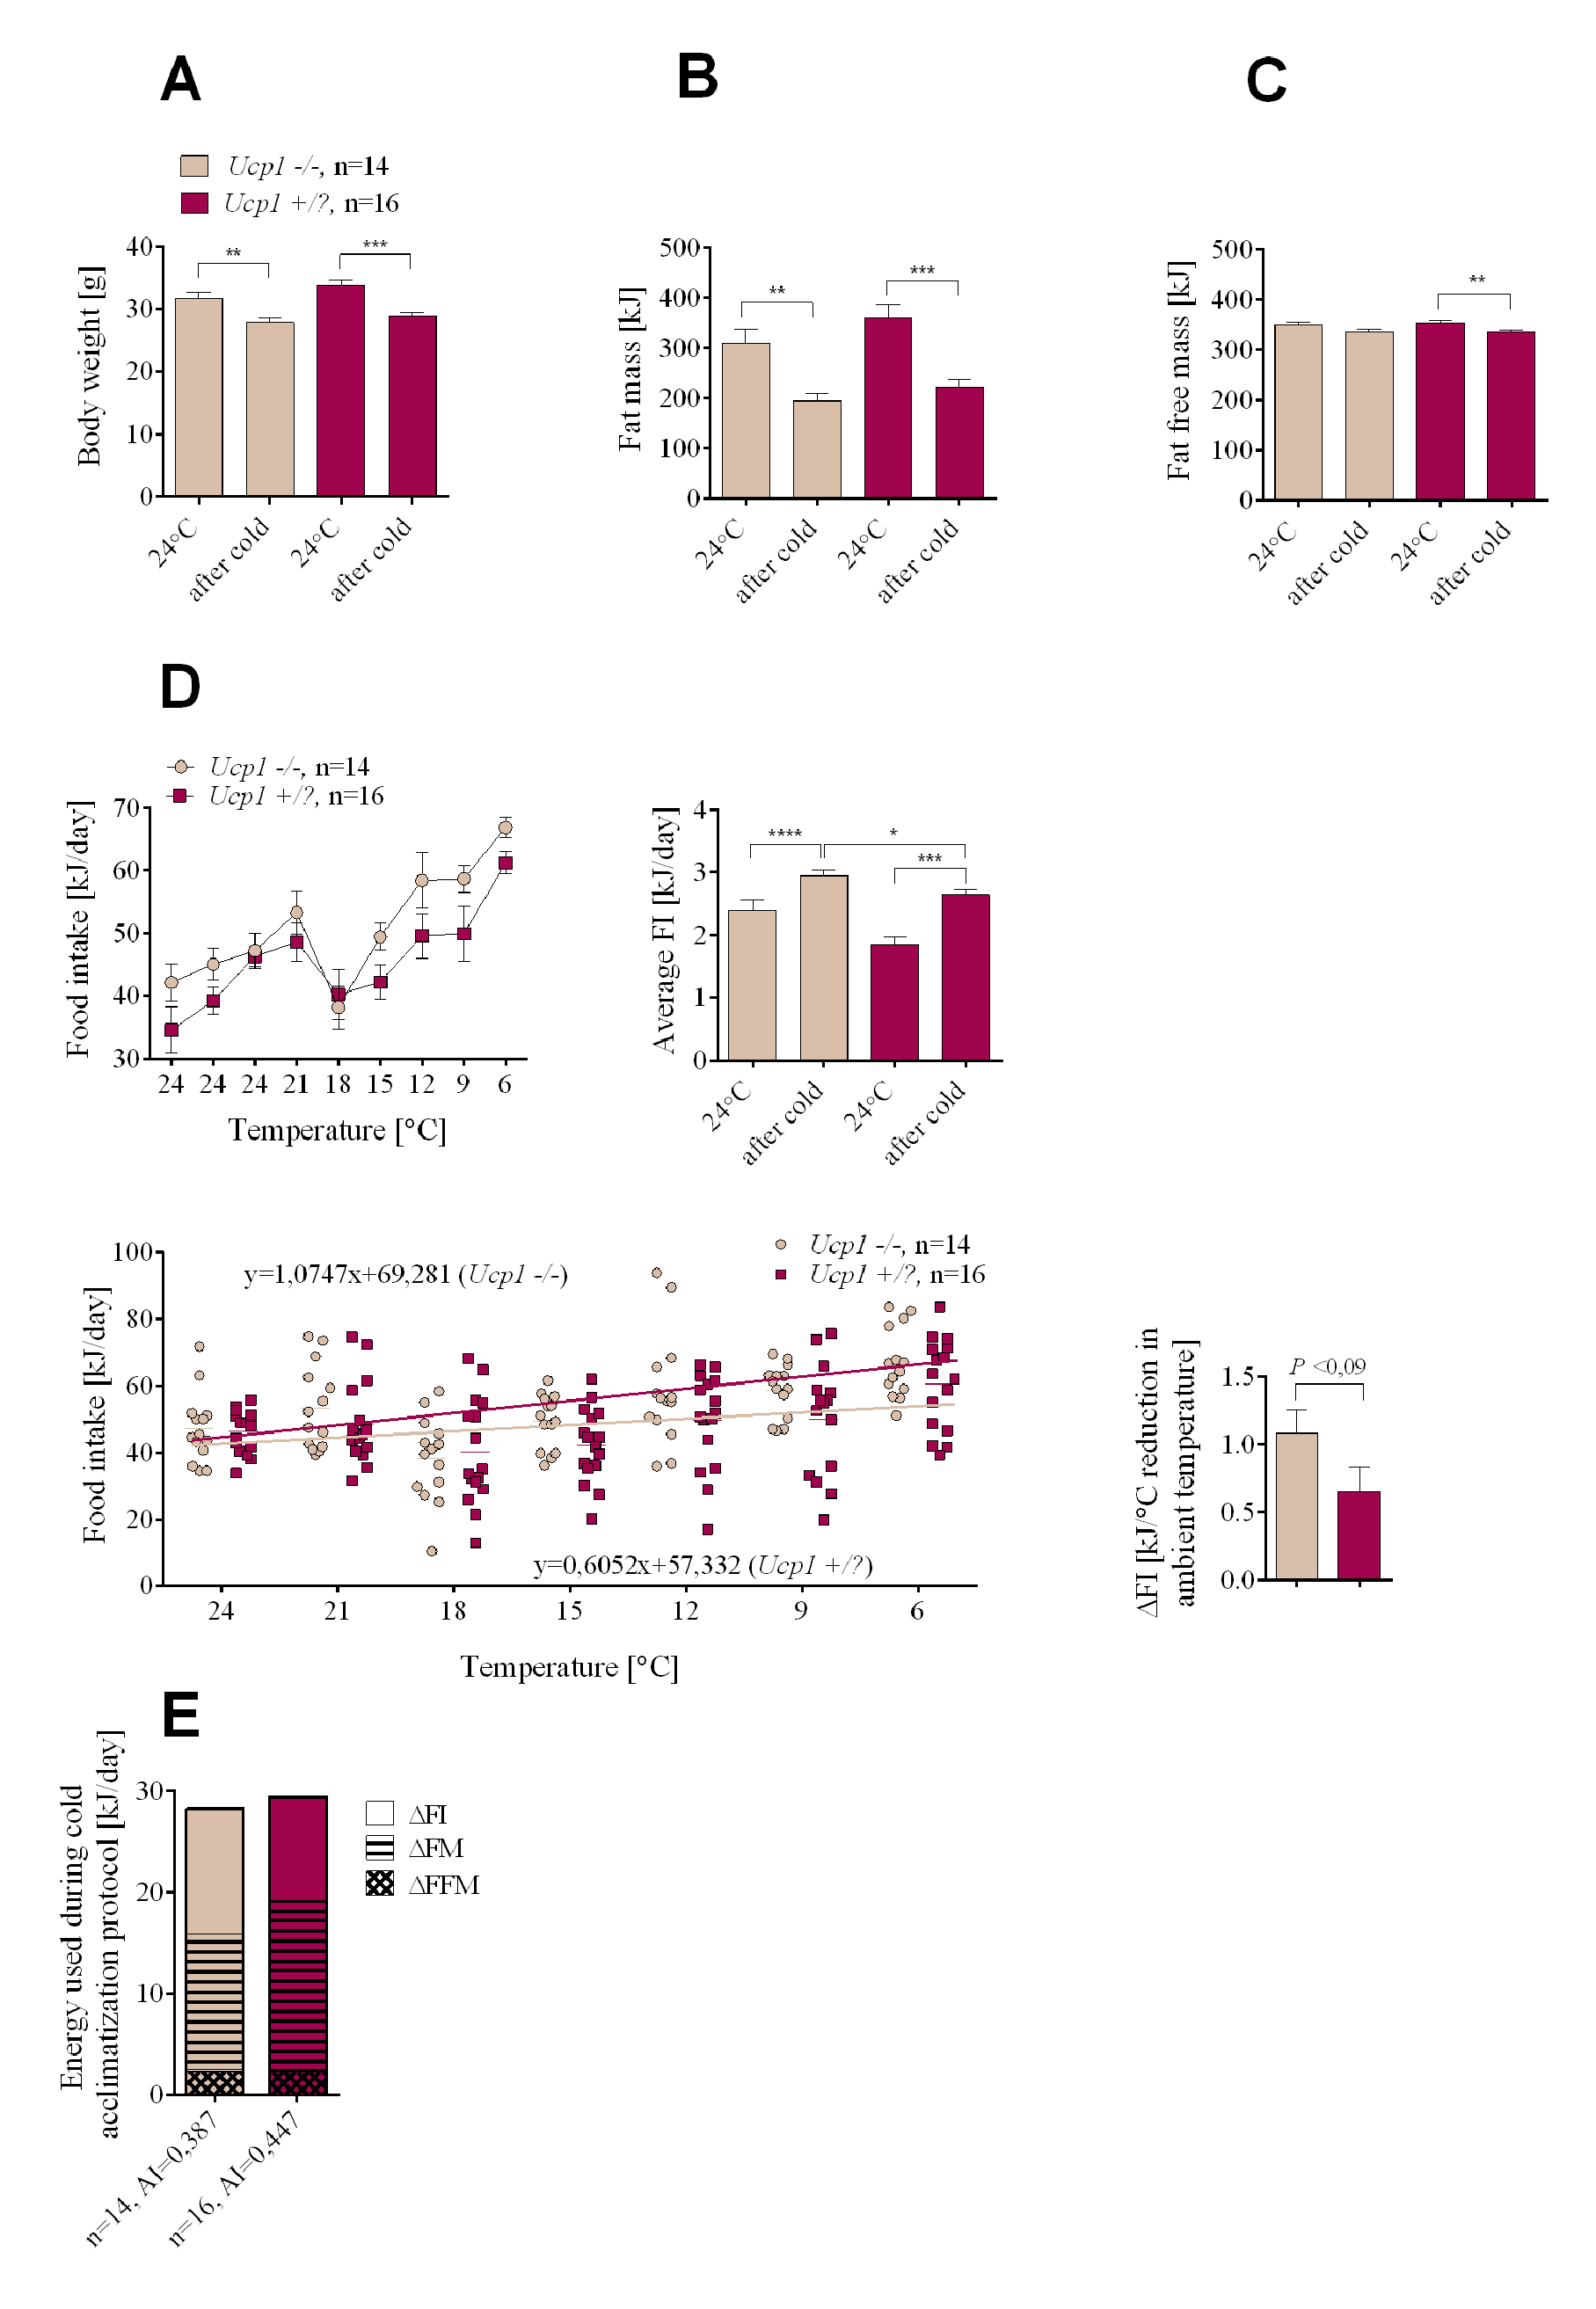 Changes in endogenous substrate utilization and food intake in cold-exposed <i>Ucp1-/-</i> and <i>Ucp1+/</i>? mice with DIO.